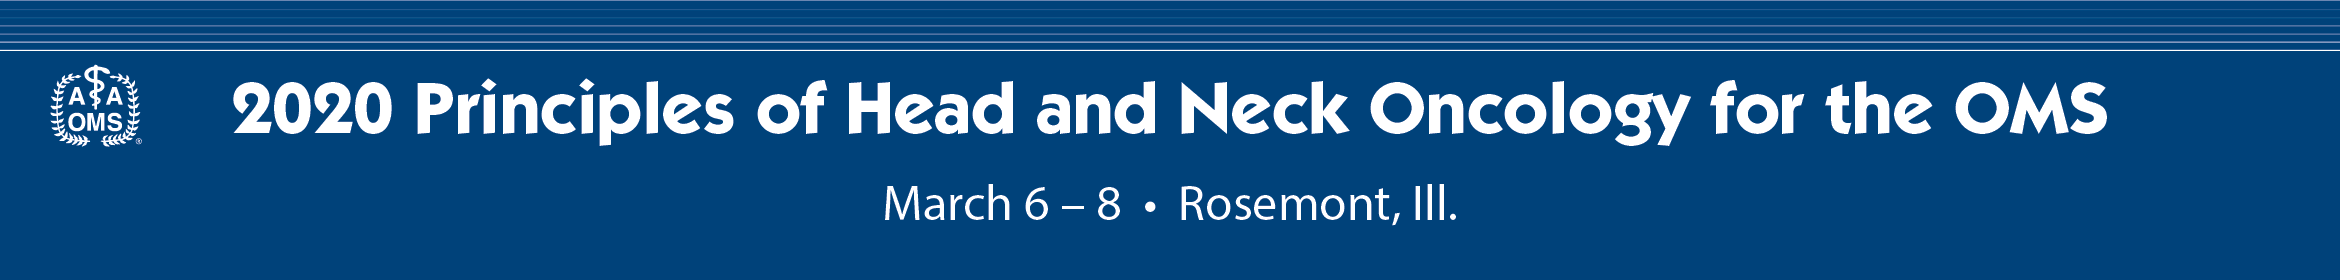 2020 Principles of Head and Neck Oncology for the OMS Main banner